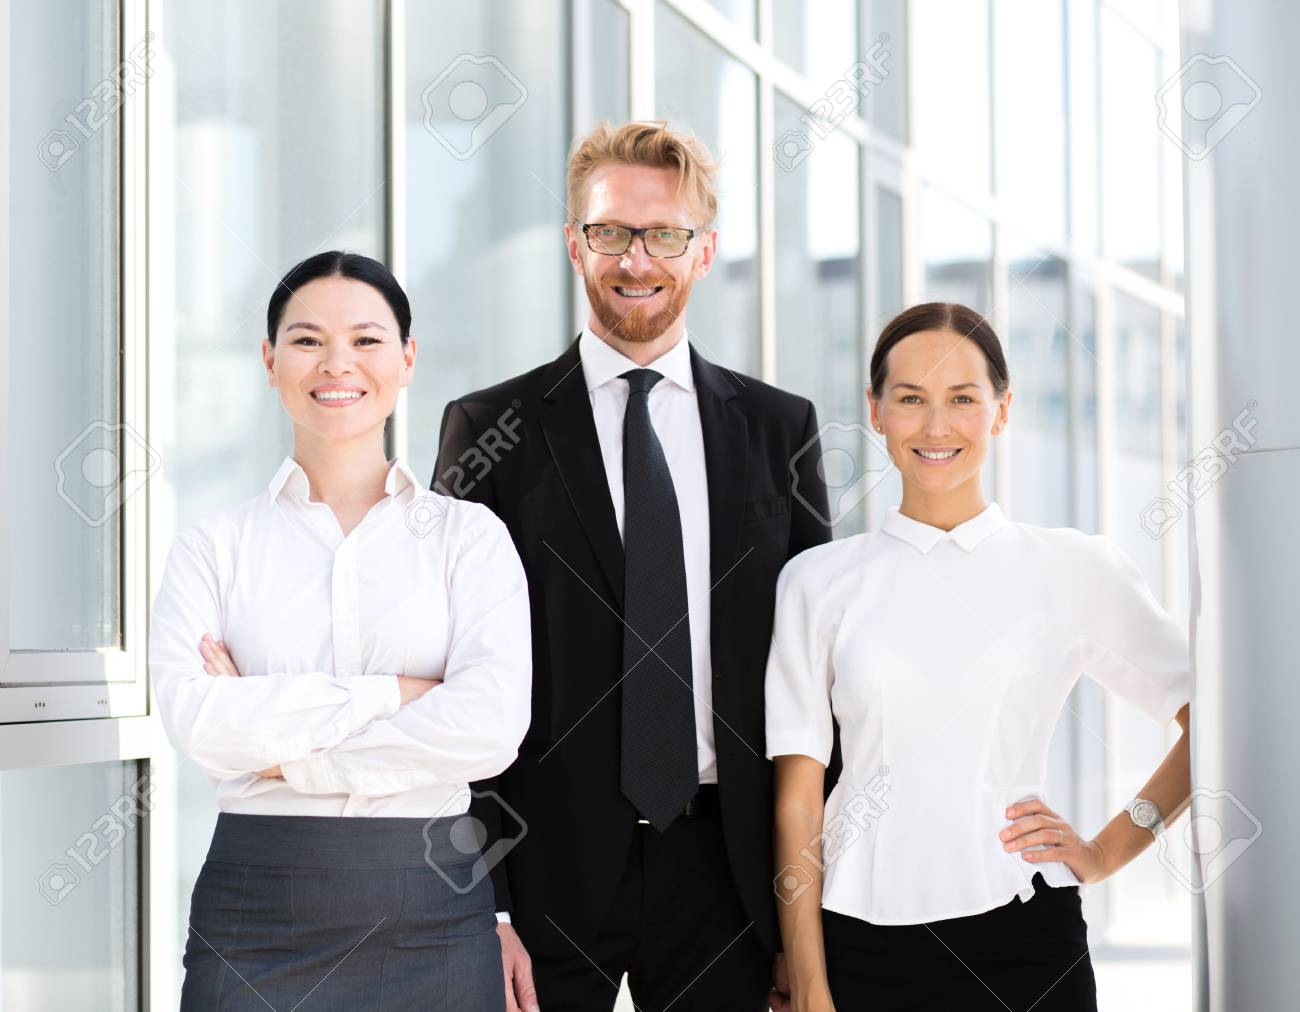 Group Of Businesspeople Standing Together Man In Business Suit